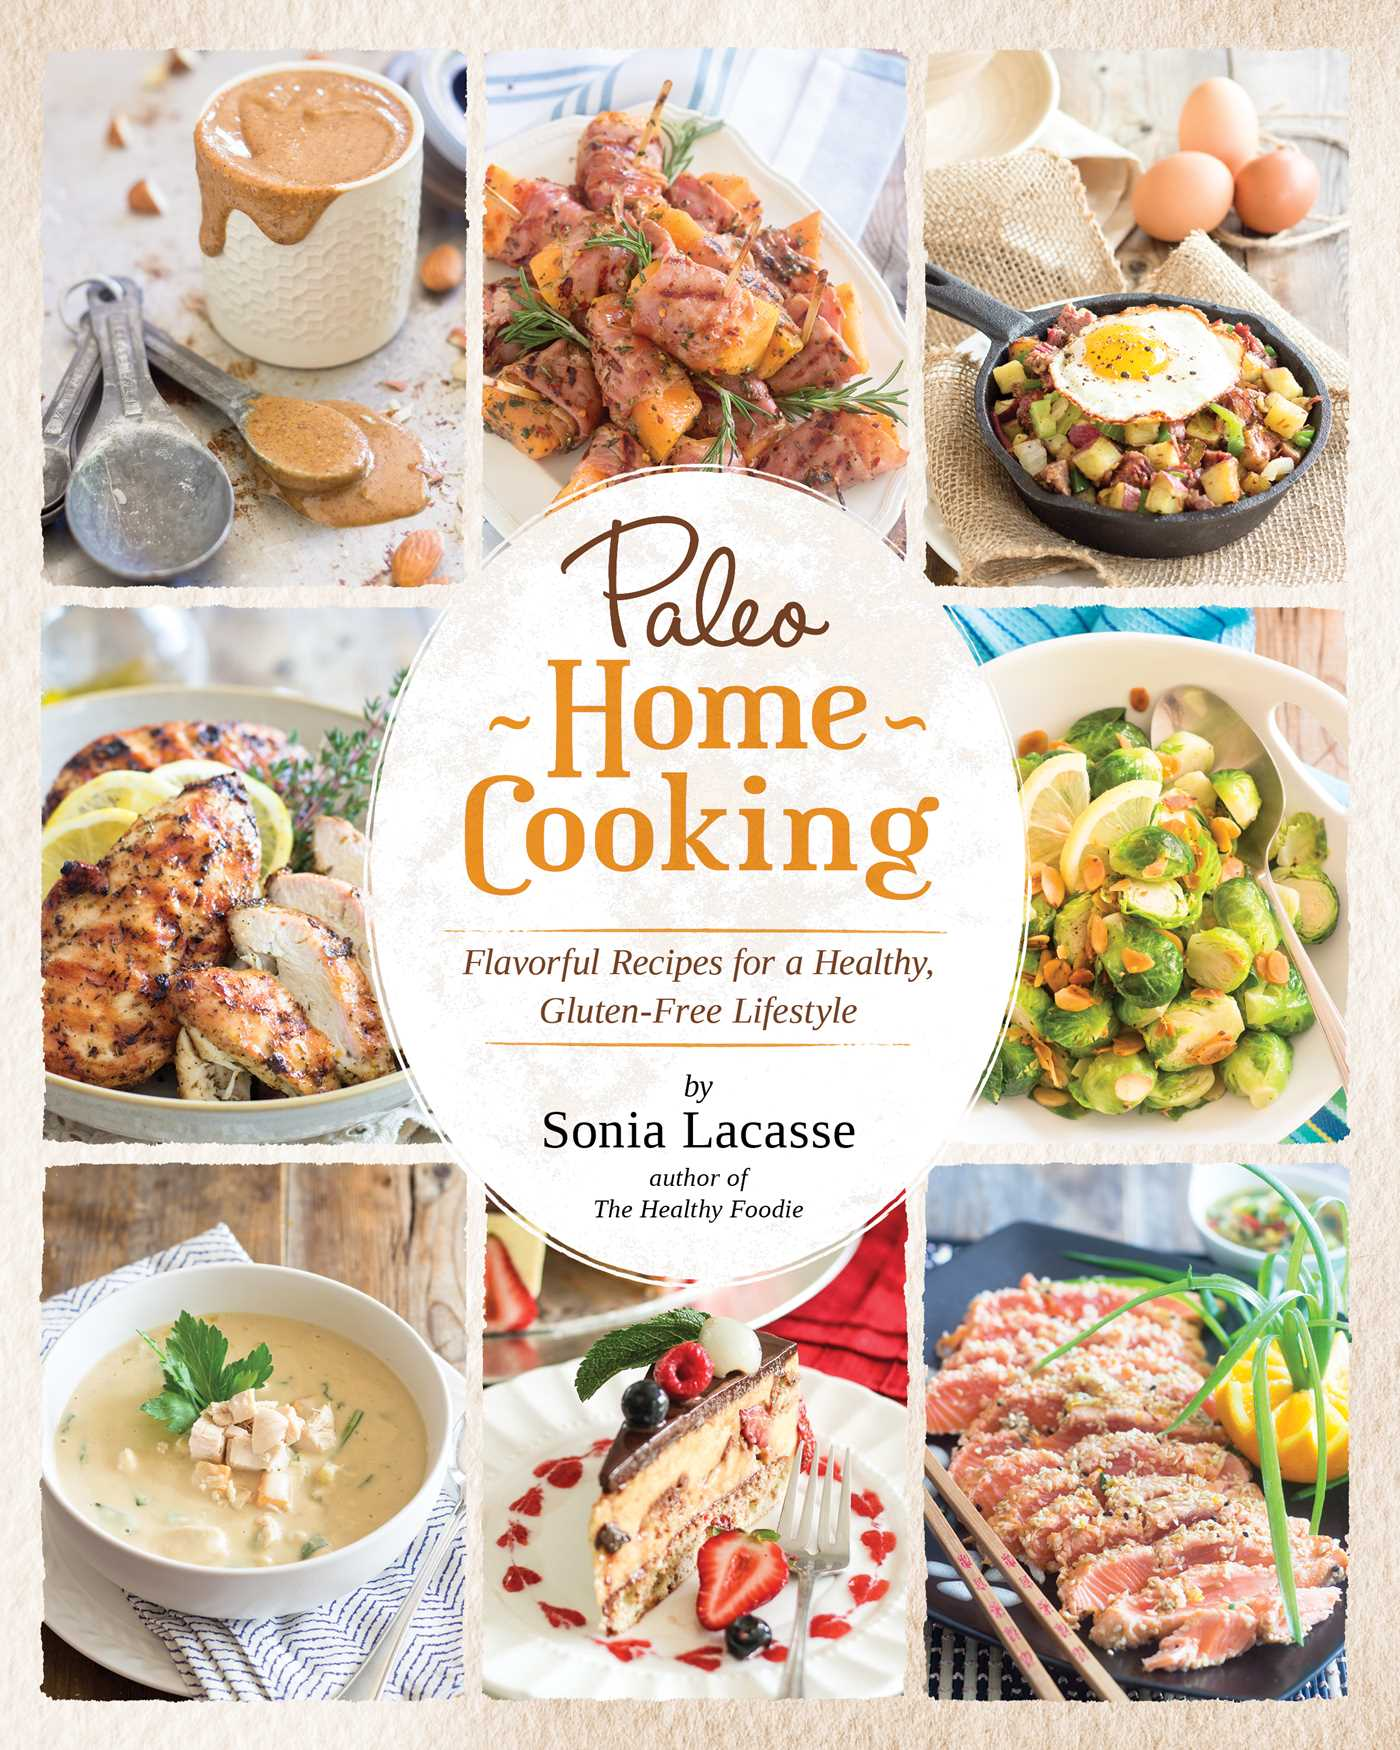 Modern Recipe Book Cover : Paleo home cooking book by sonia lacasse official